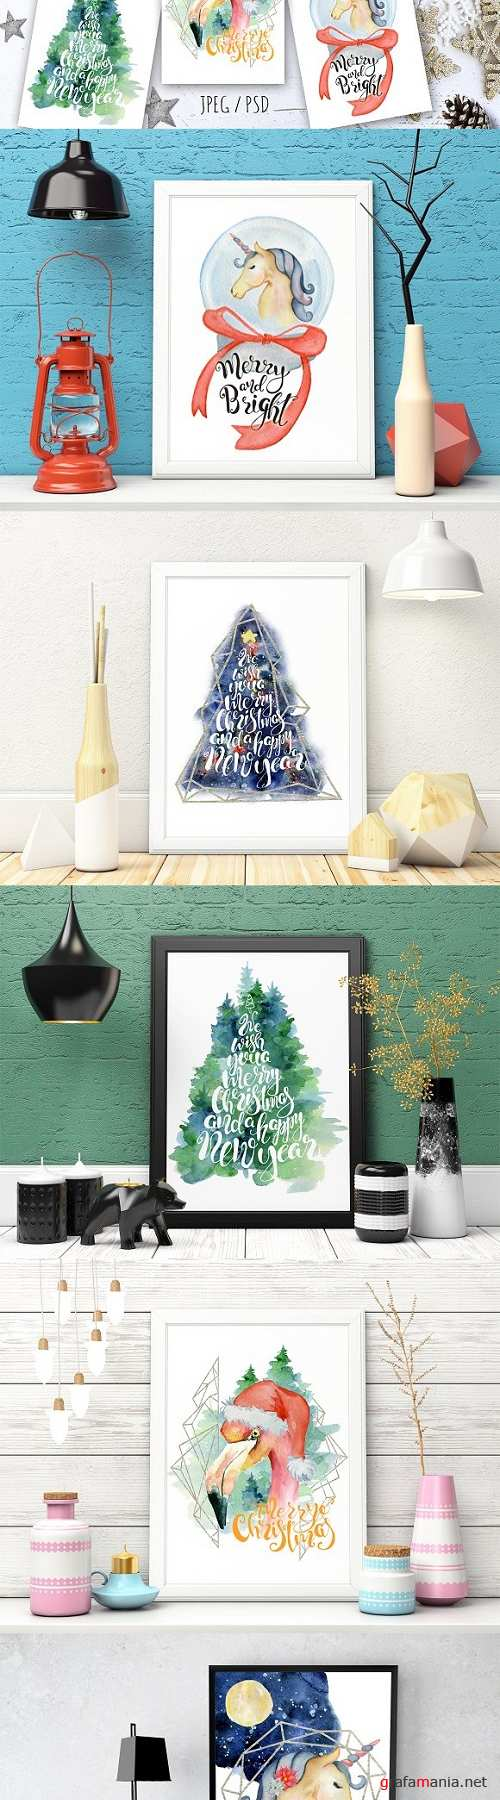 Christmas watercolor cards Vol.3 - 2084661